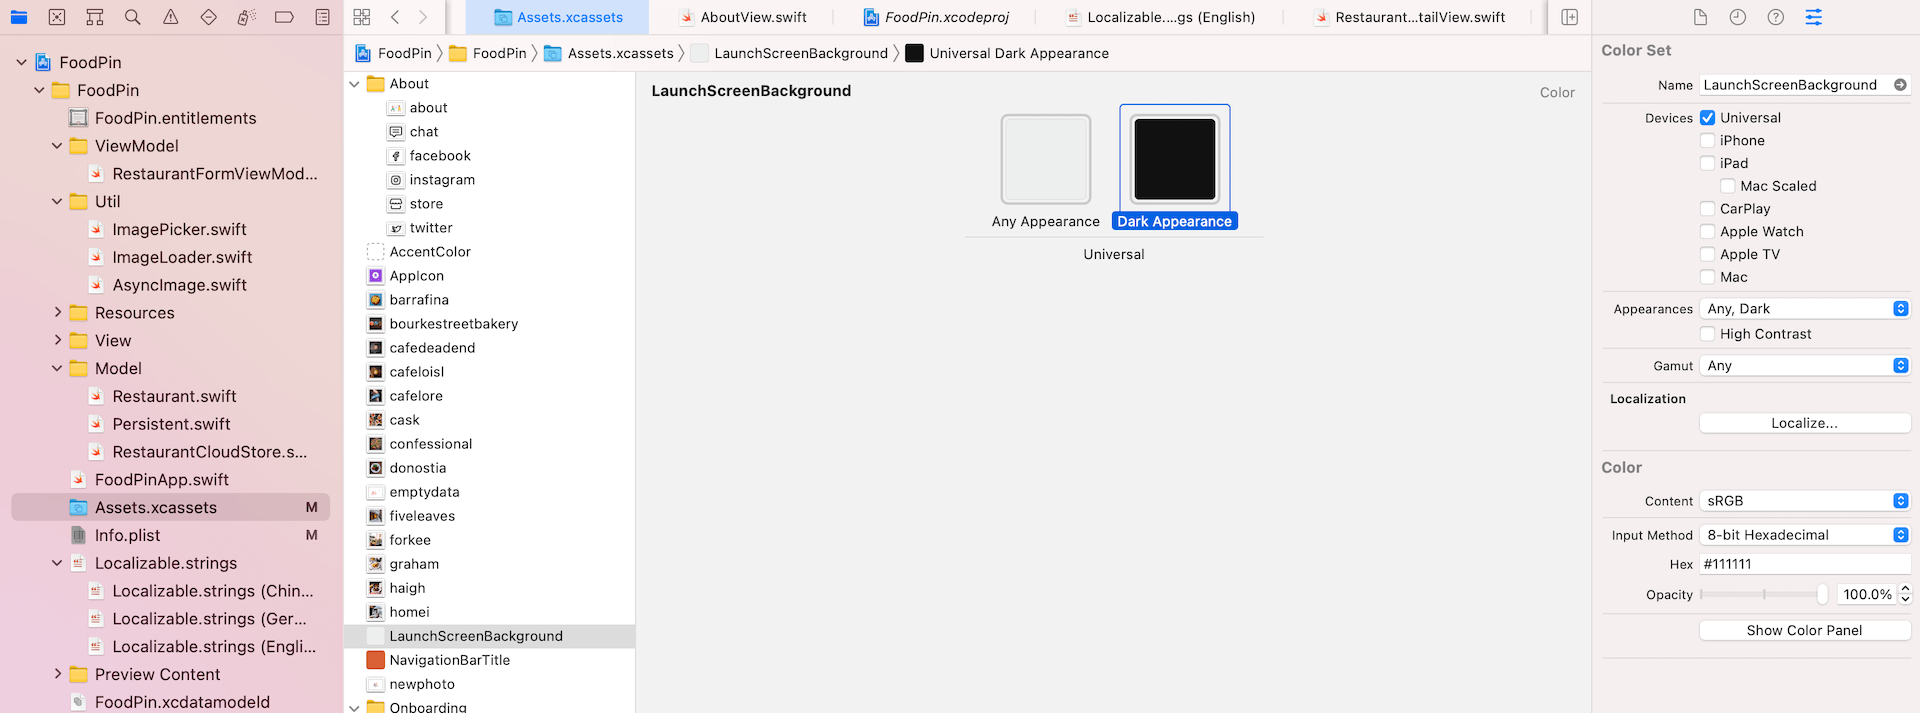 Creating a color set in asset catalog of Xcode